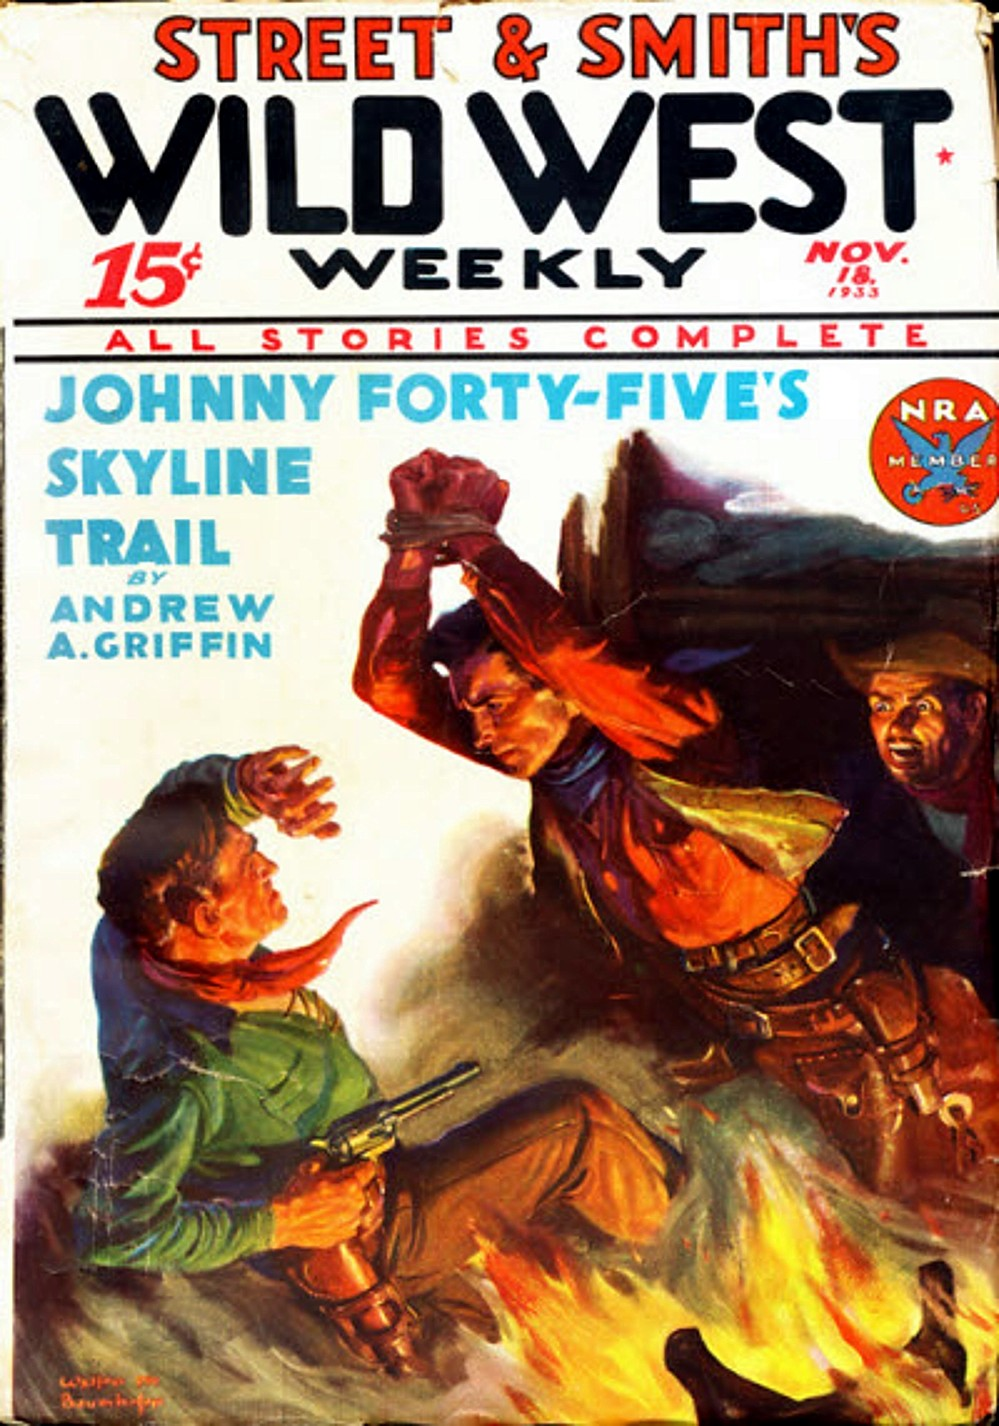 Wild West Weekly 2 Issue lot 1927/37 Early Issue and Nice Issue in one lot!